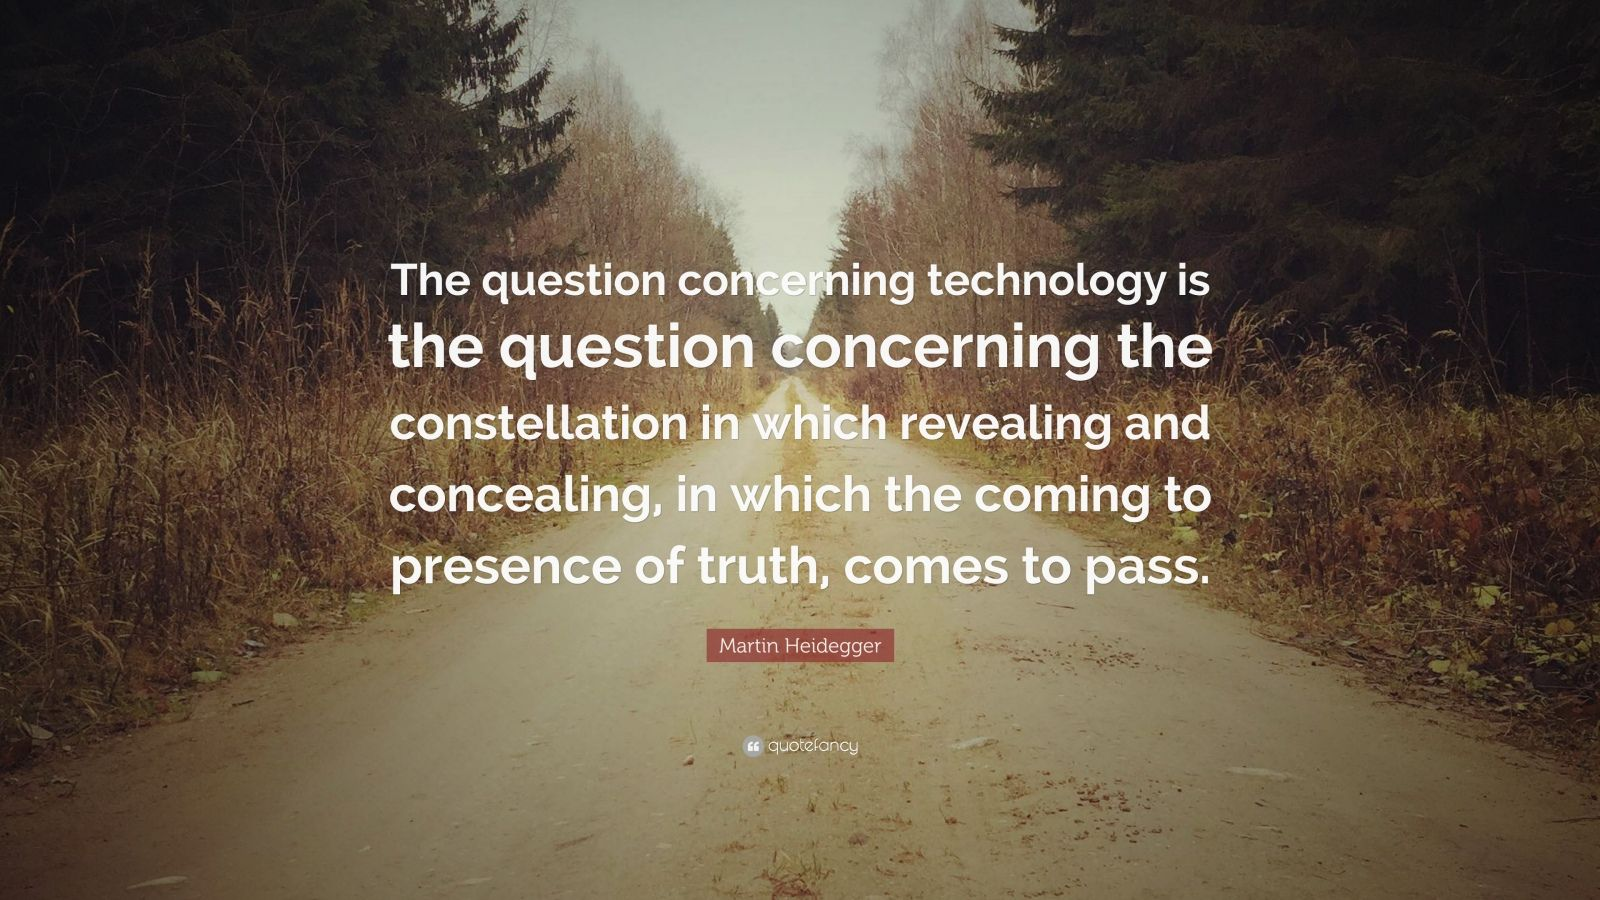 """an overview of the question concerning technology by martin heidegger Continental philosophy review  martin heidegger: bremen and freiburg  lectures: insight into that which is and basic  in november 1953 after giving his  lecture """"the question concerning technology"""" at the bavarian."""